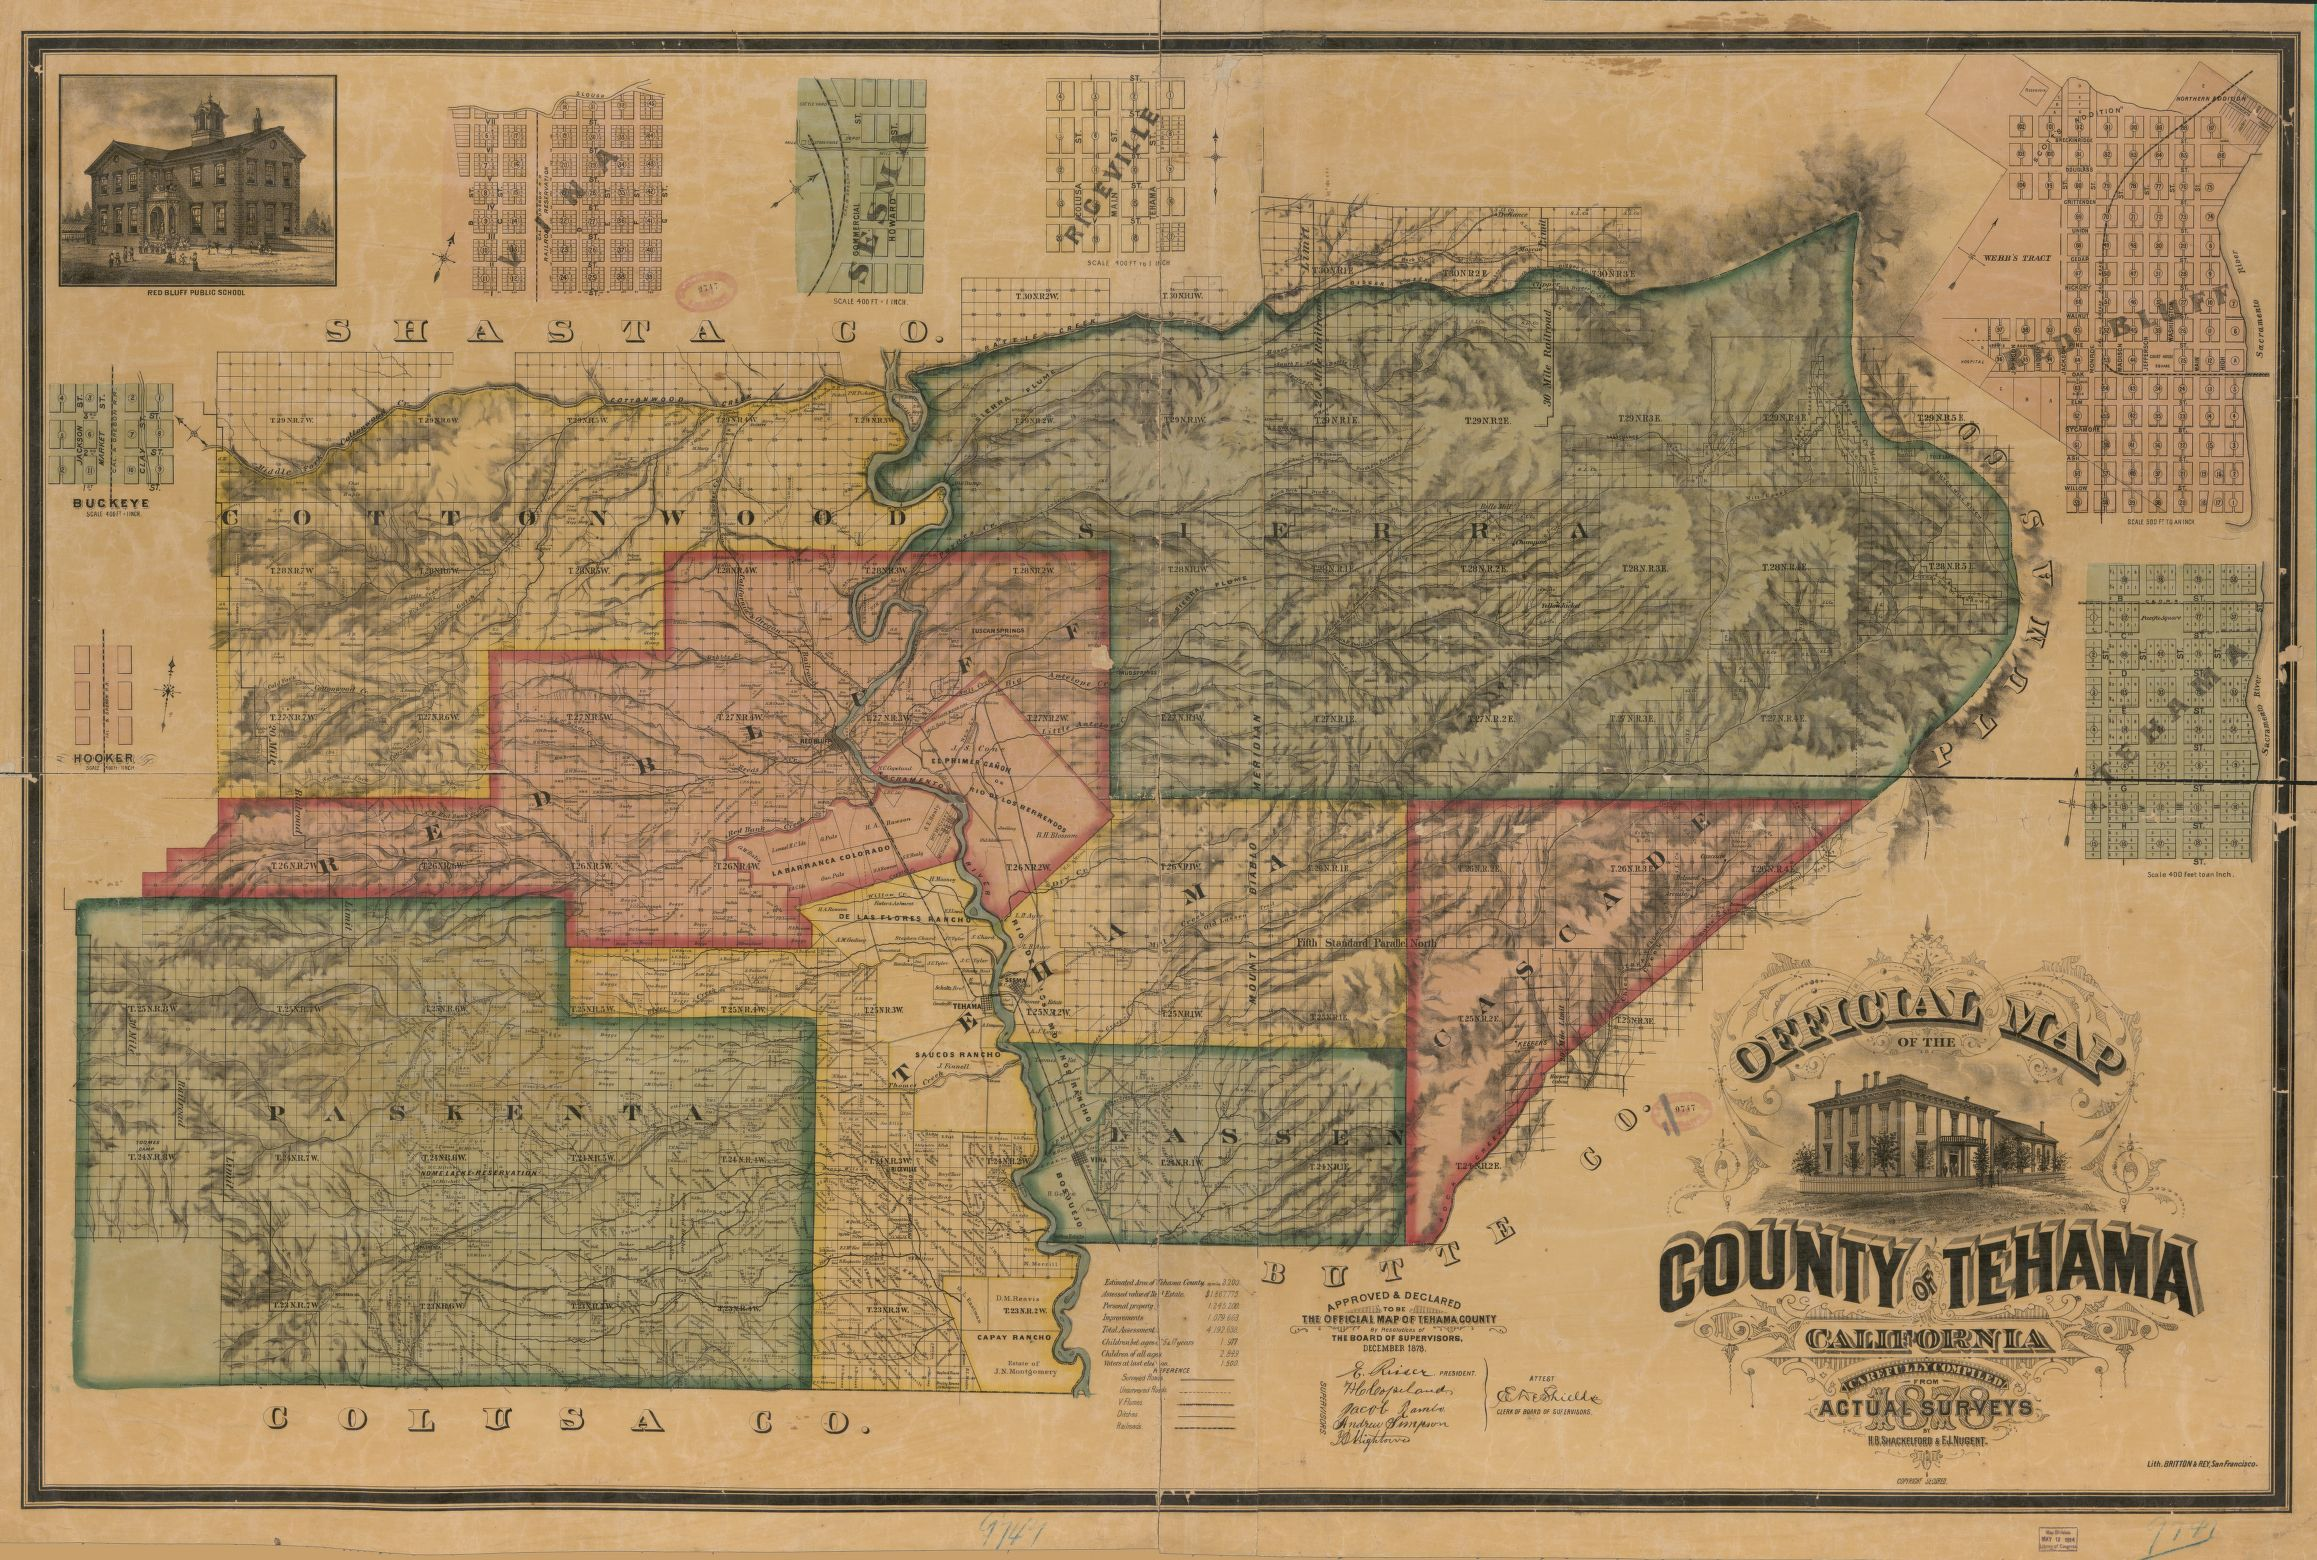 Official 1878 Tehama County Map, with plotted surveys